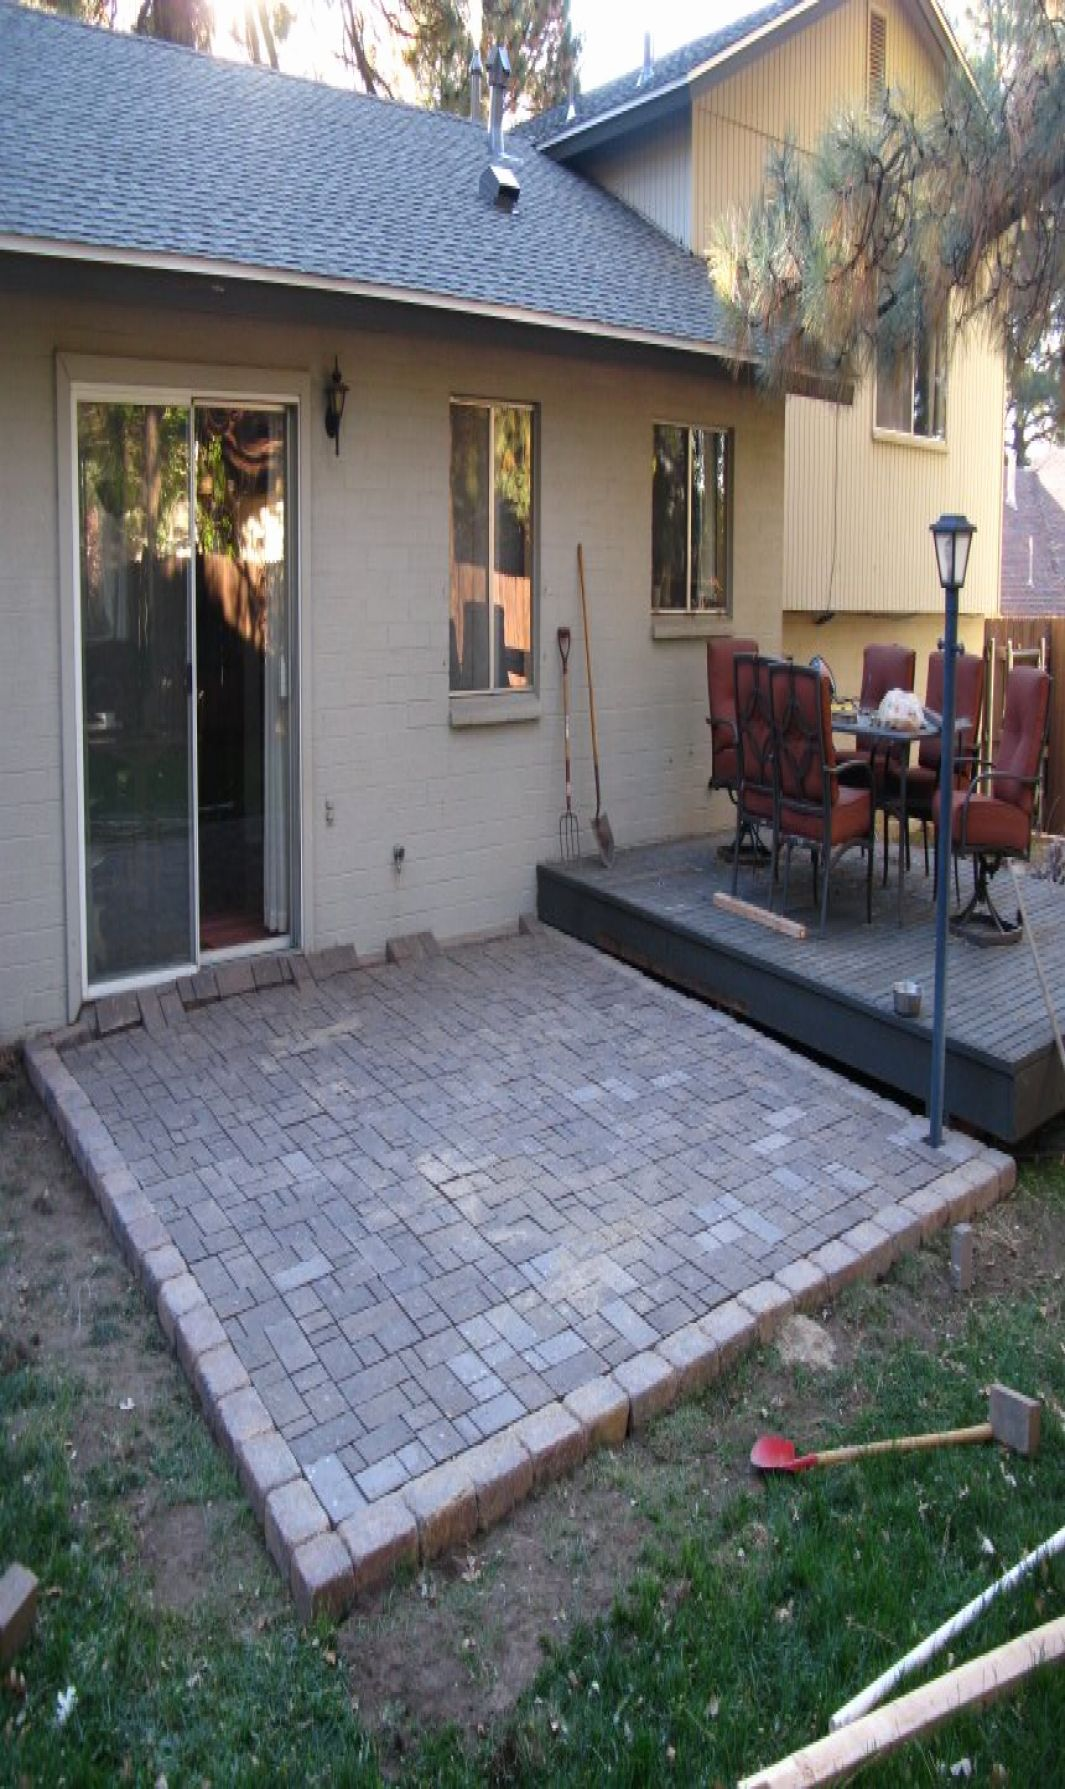 Perfect Inexpensive Outdoor Patio Ideas Cinder Blocks -24 ... on Home Depot Patio Ideas id=15488